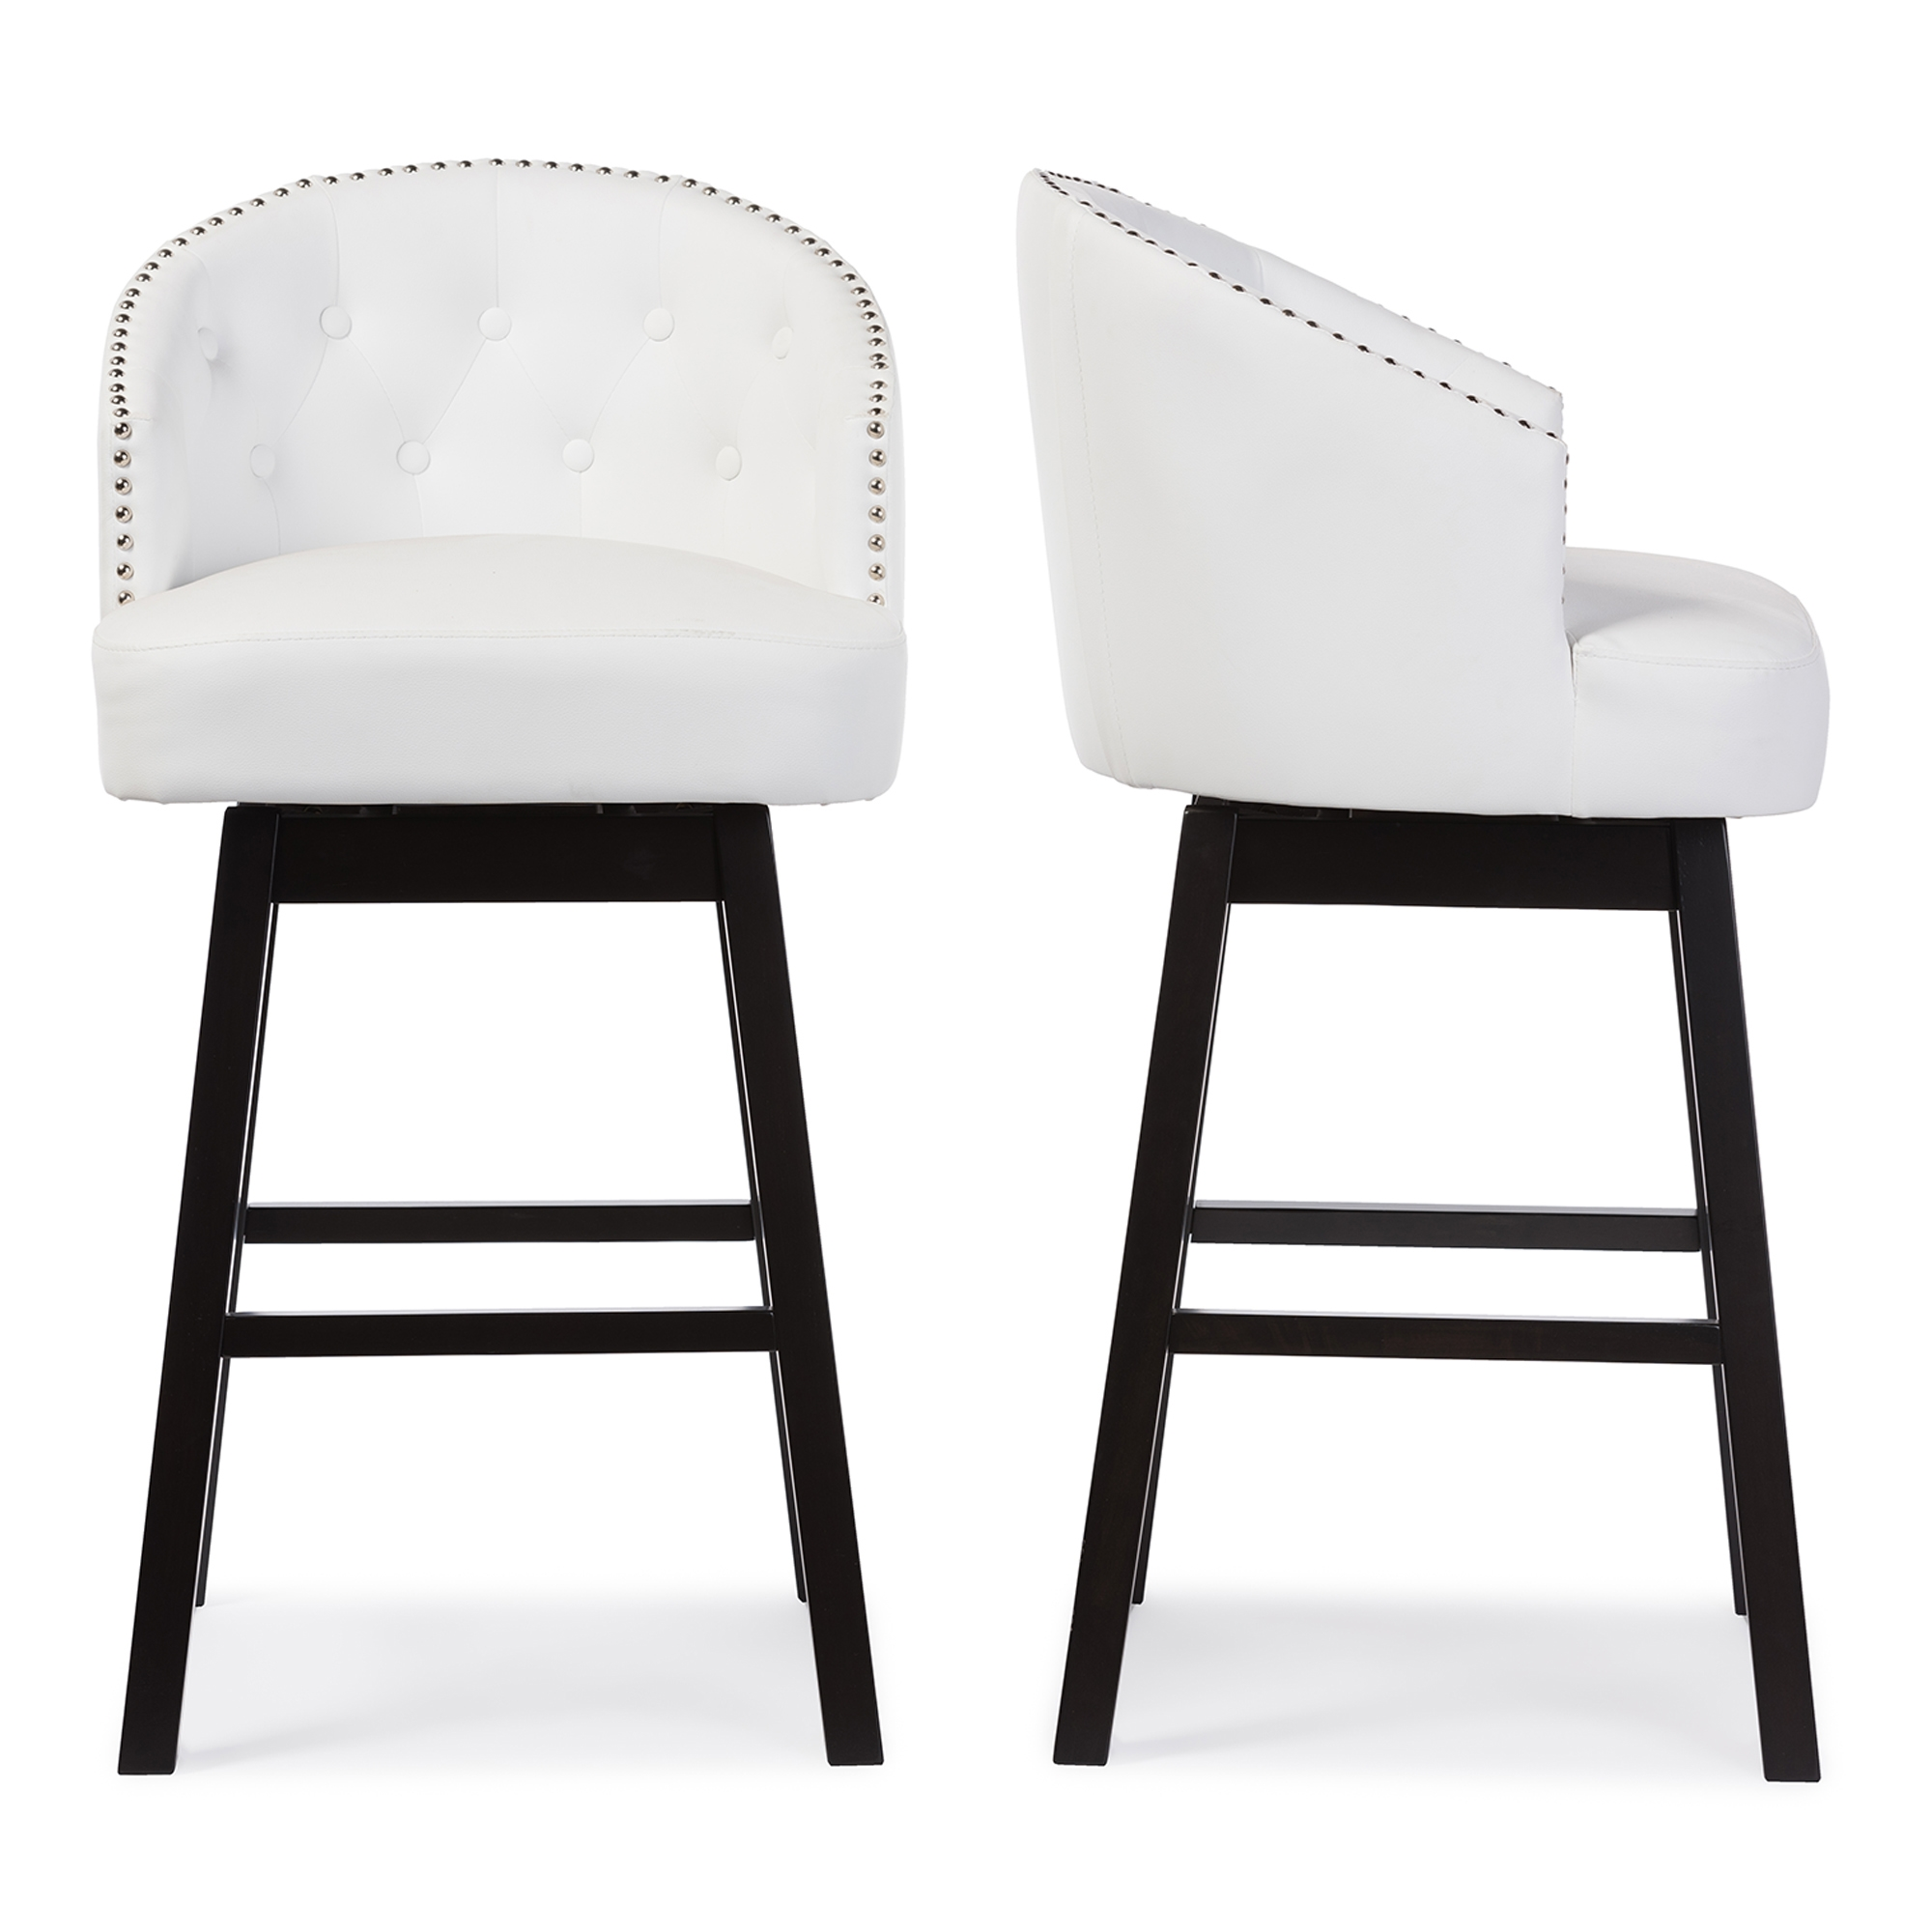 Baxton Studio Avril Modern and Contemporary White Faux Leather Tufted Swivel Barstool with Nail heads Trim  sc 1 st  Baxton Studio Outlet : swivel stool - islam-shia.org